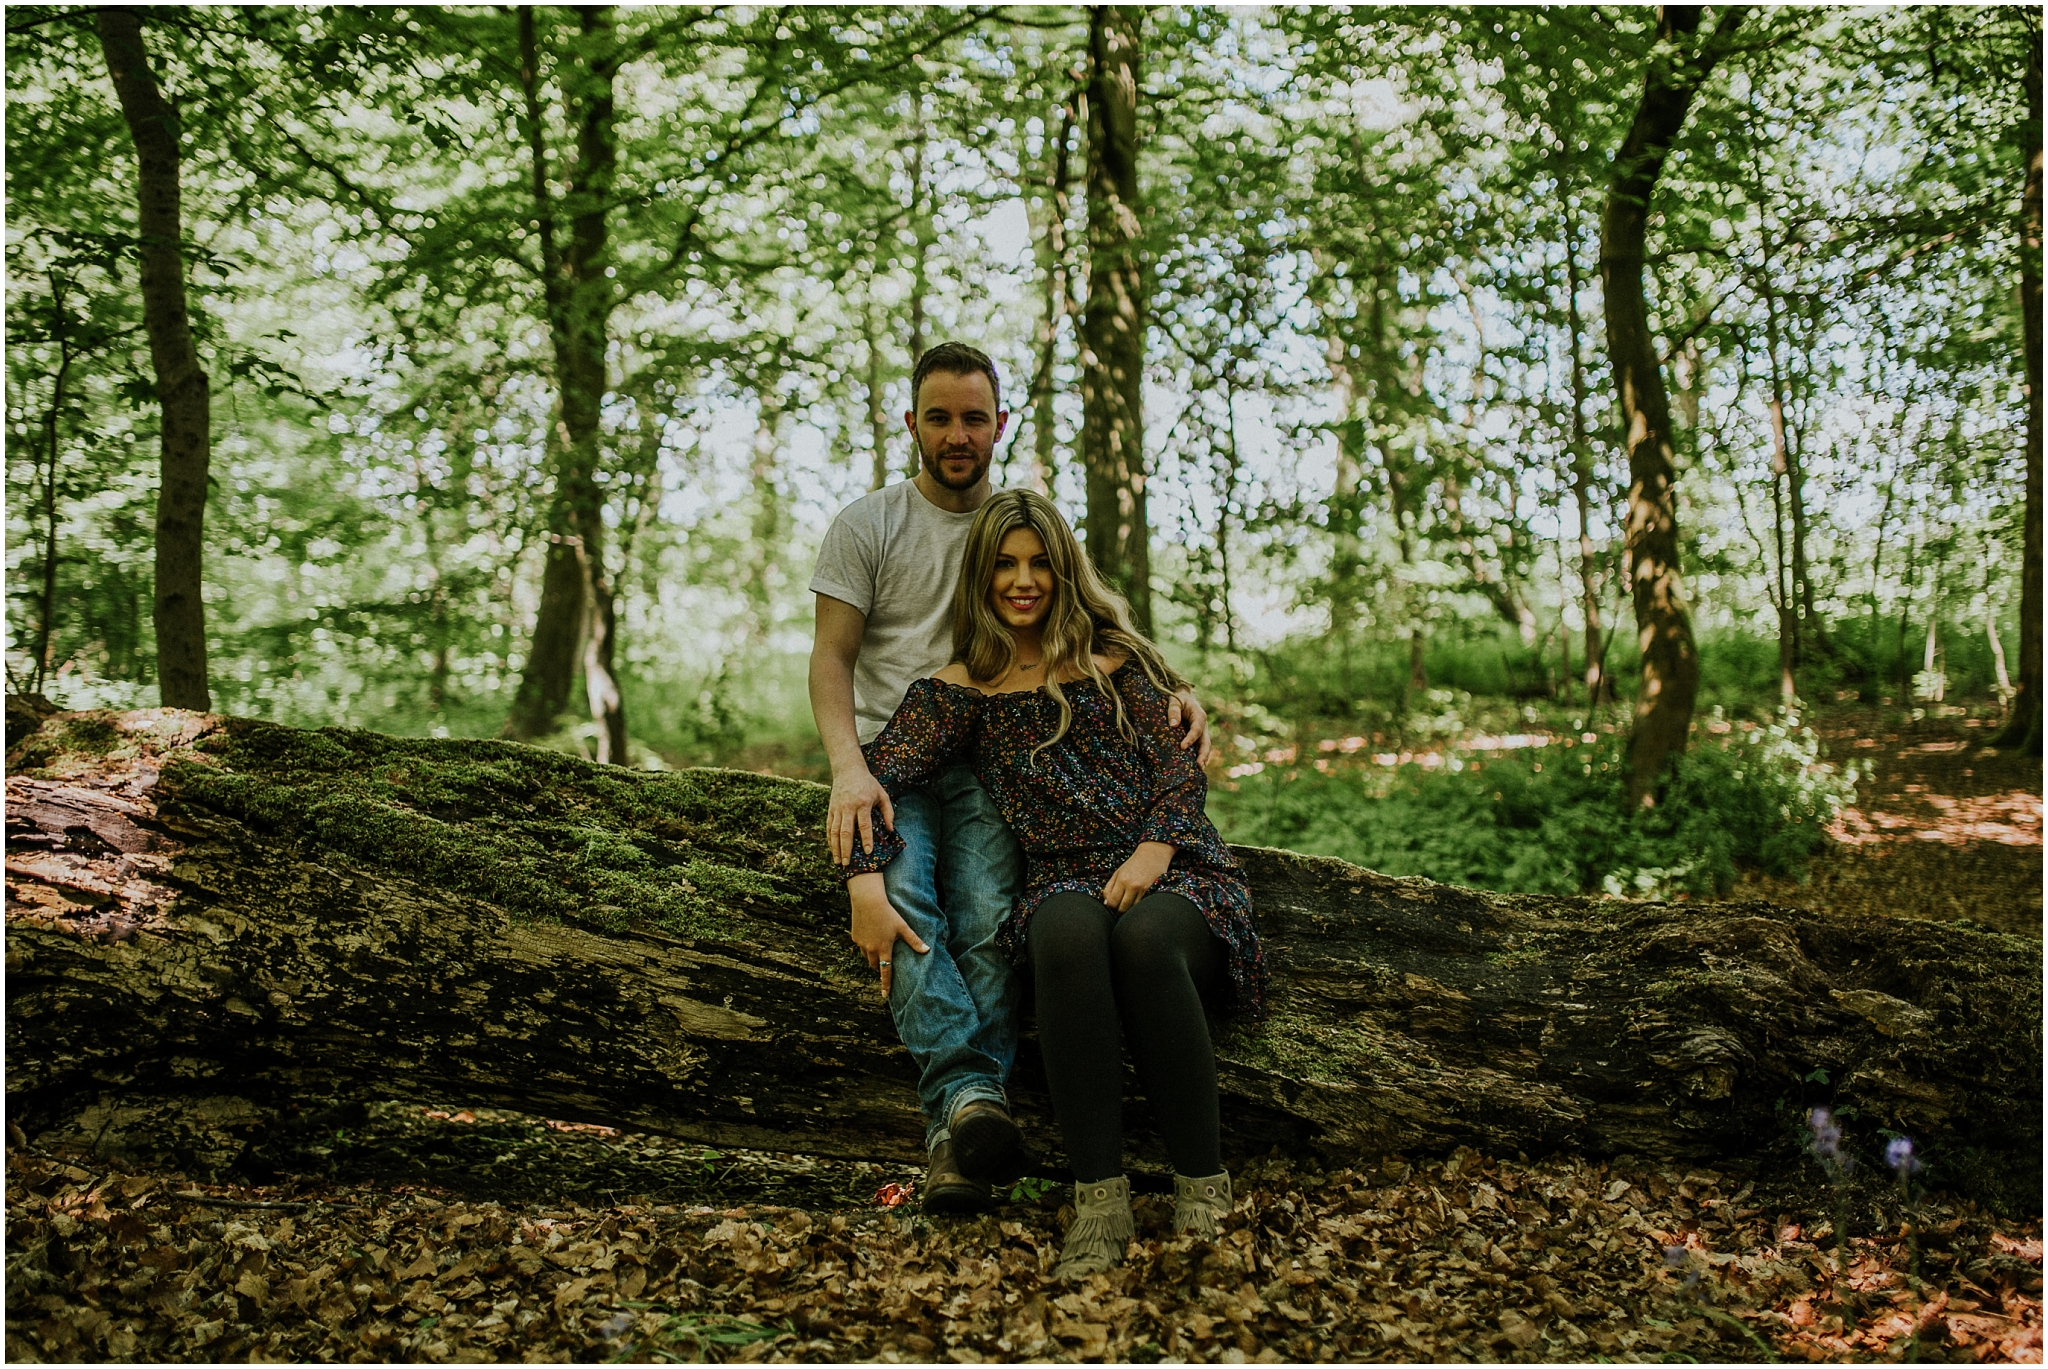 Pollock Park Engagement Shoot Glasgow